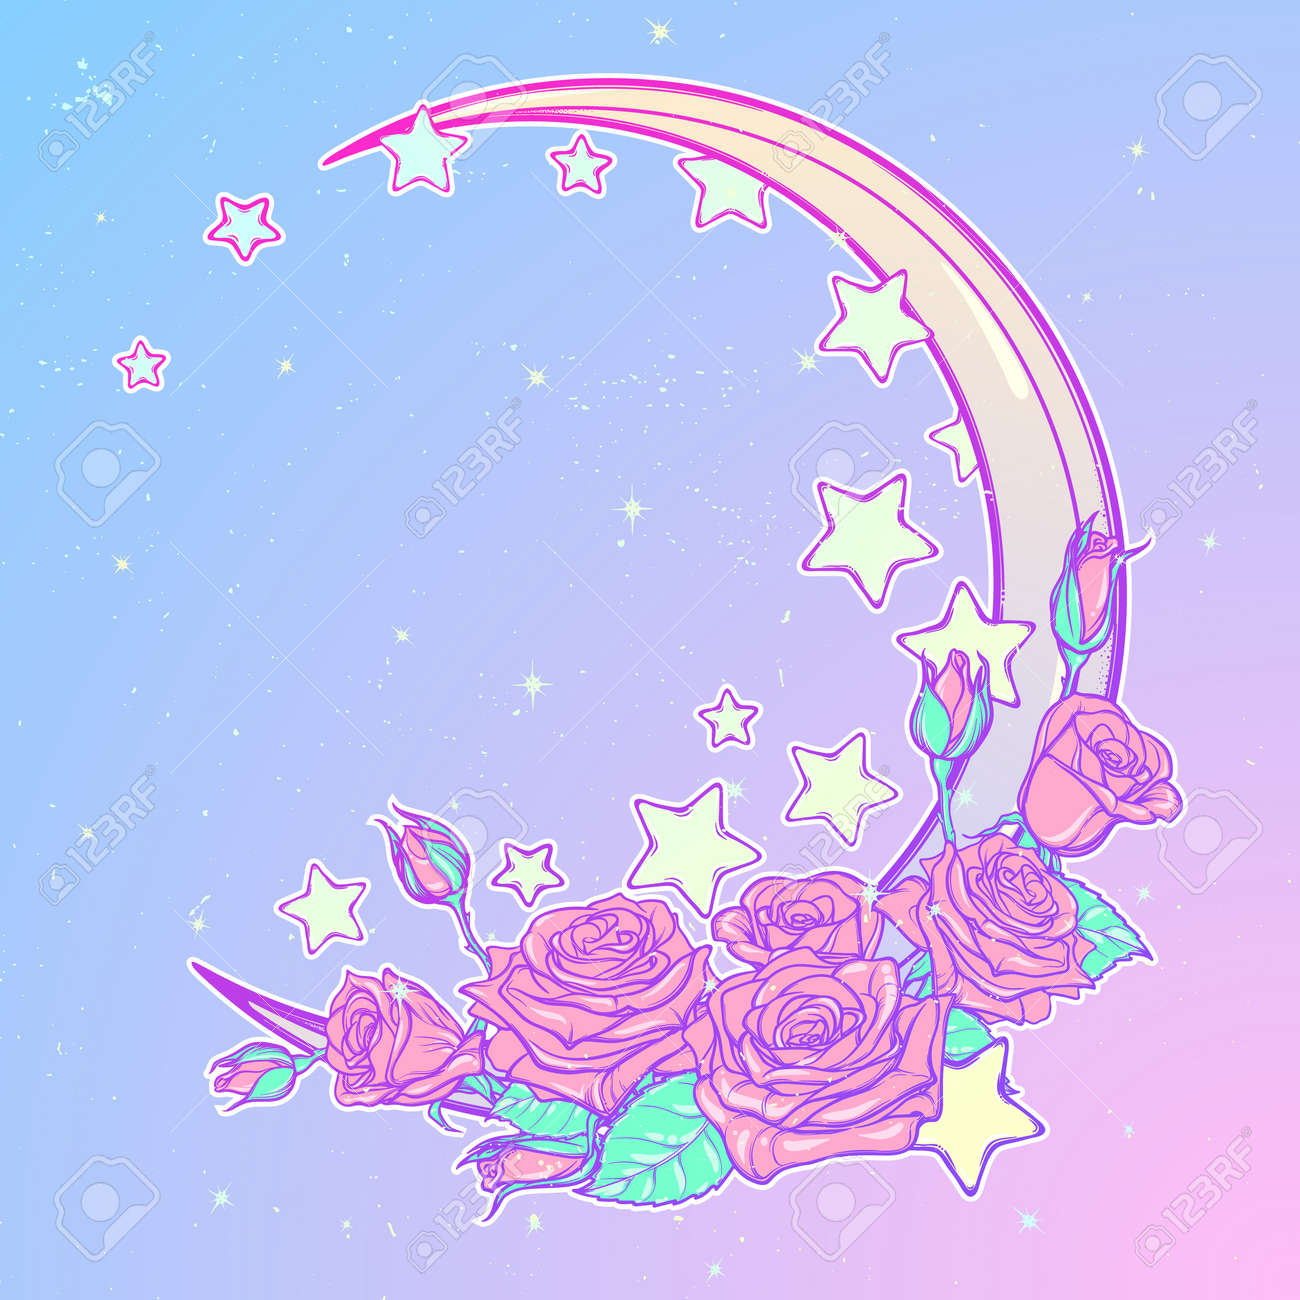 kawaii night sky composition with roses bouquet stars and moon